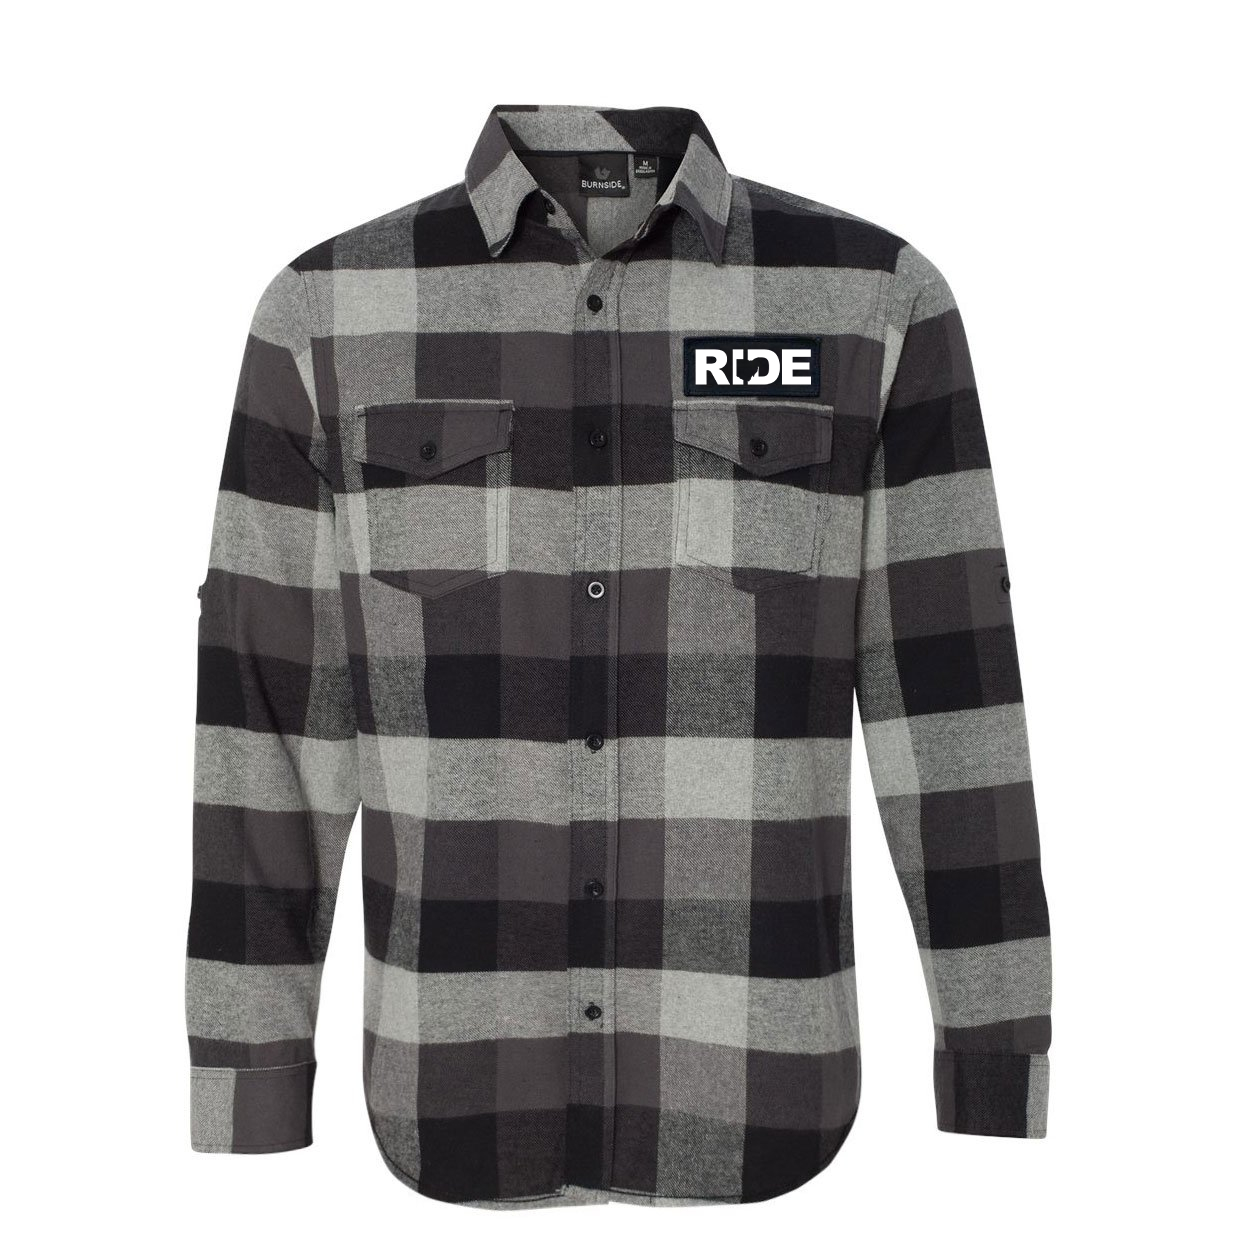 Ride Ohio Classic Unisex Long Sleeve Woven Patch Flannel Shirt Black/Gray (White Logo)